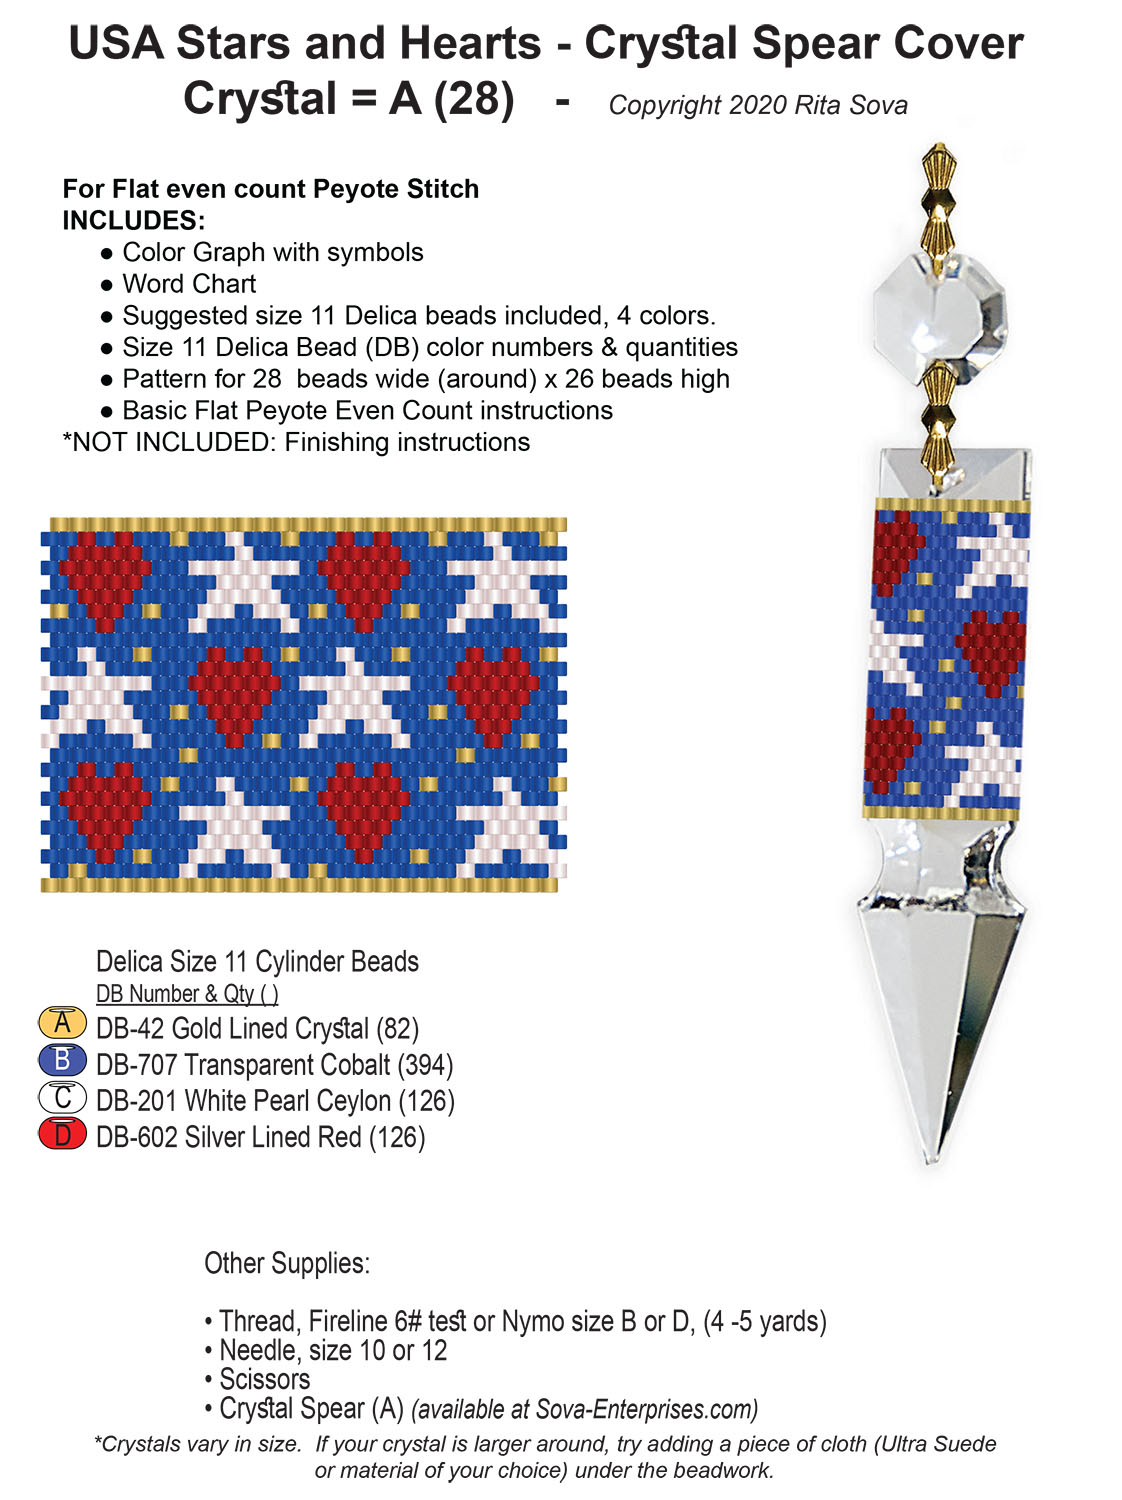 USA Stars and Hearts Crystal Spear Cover